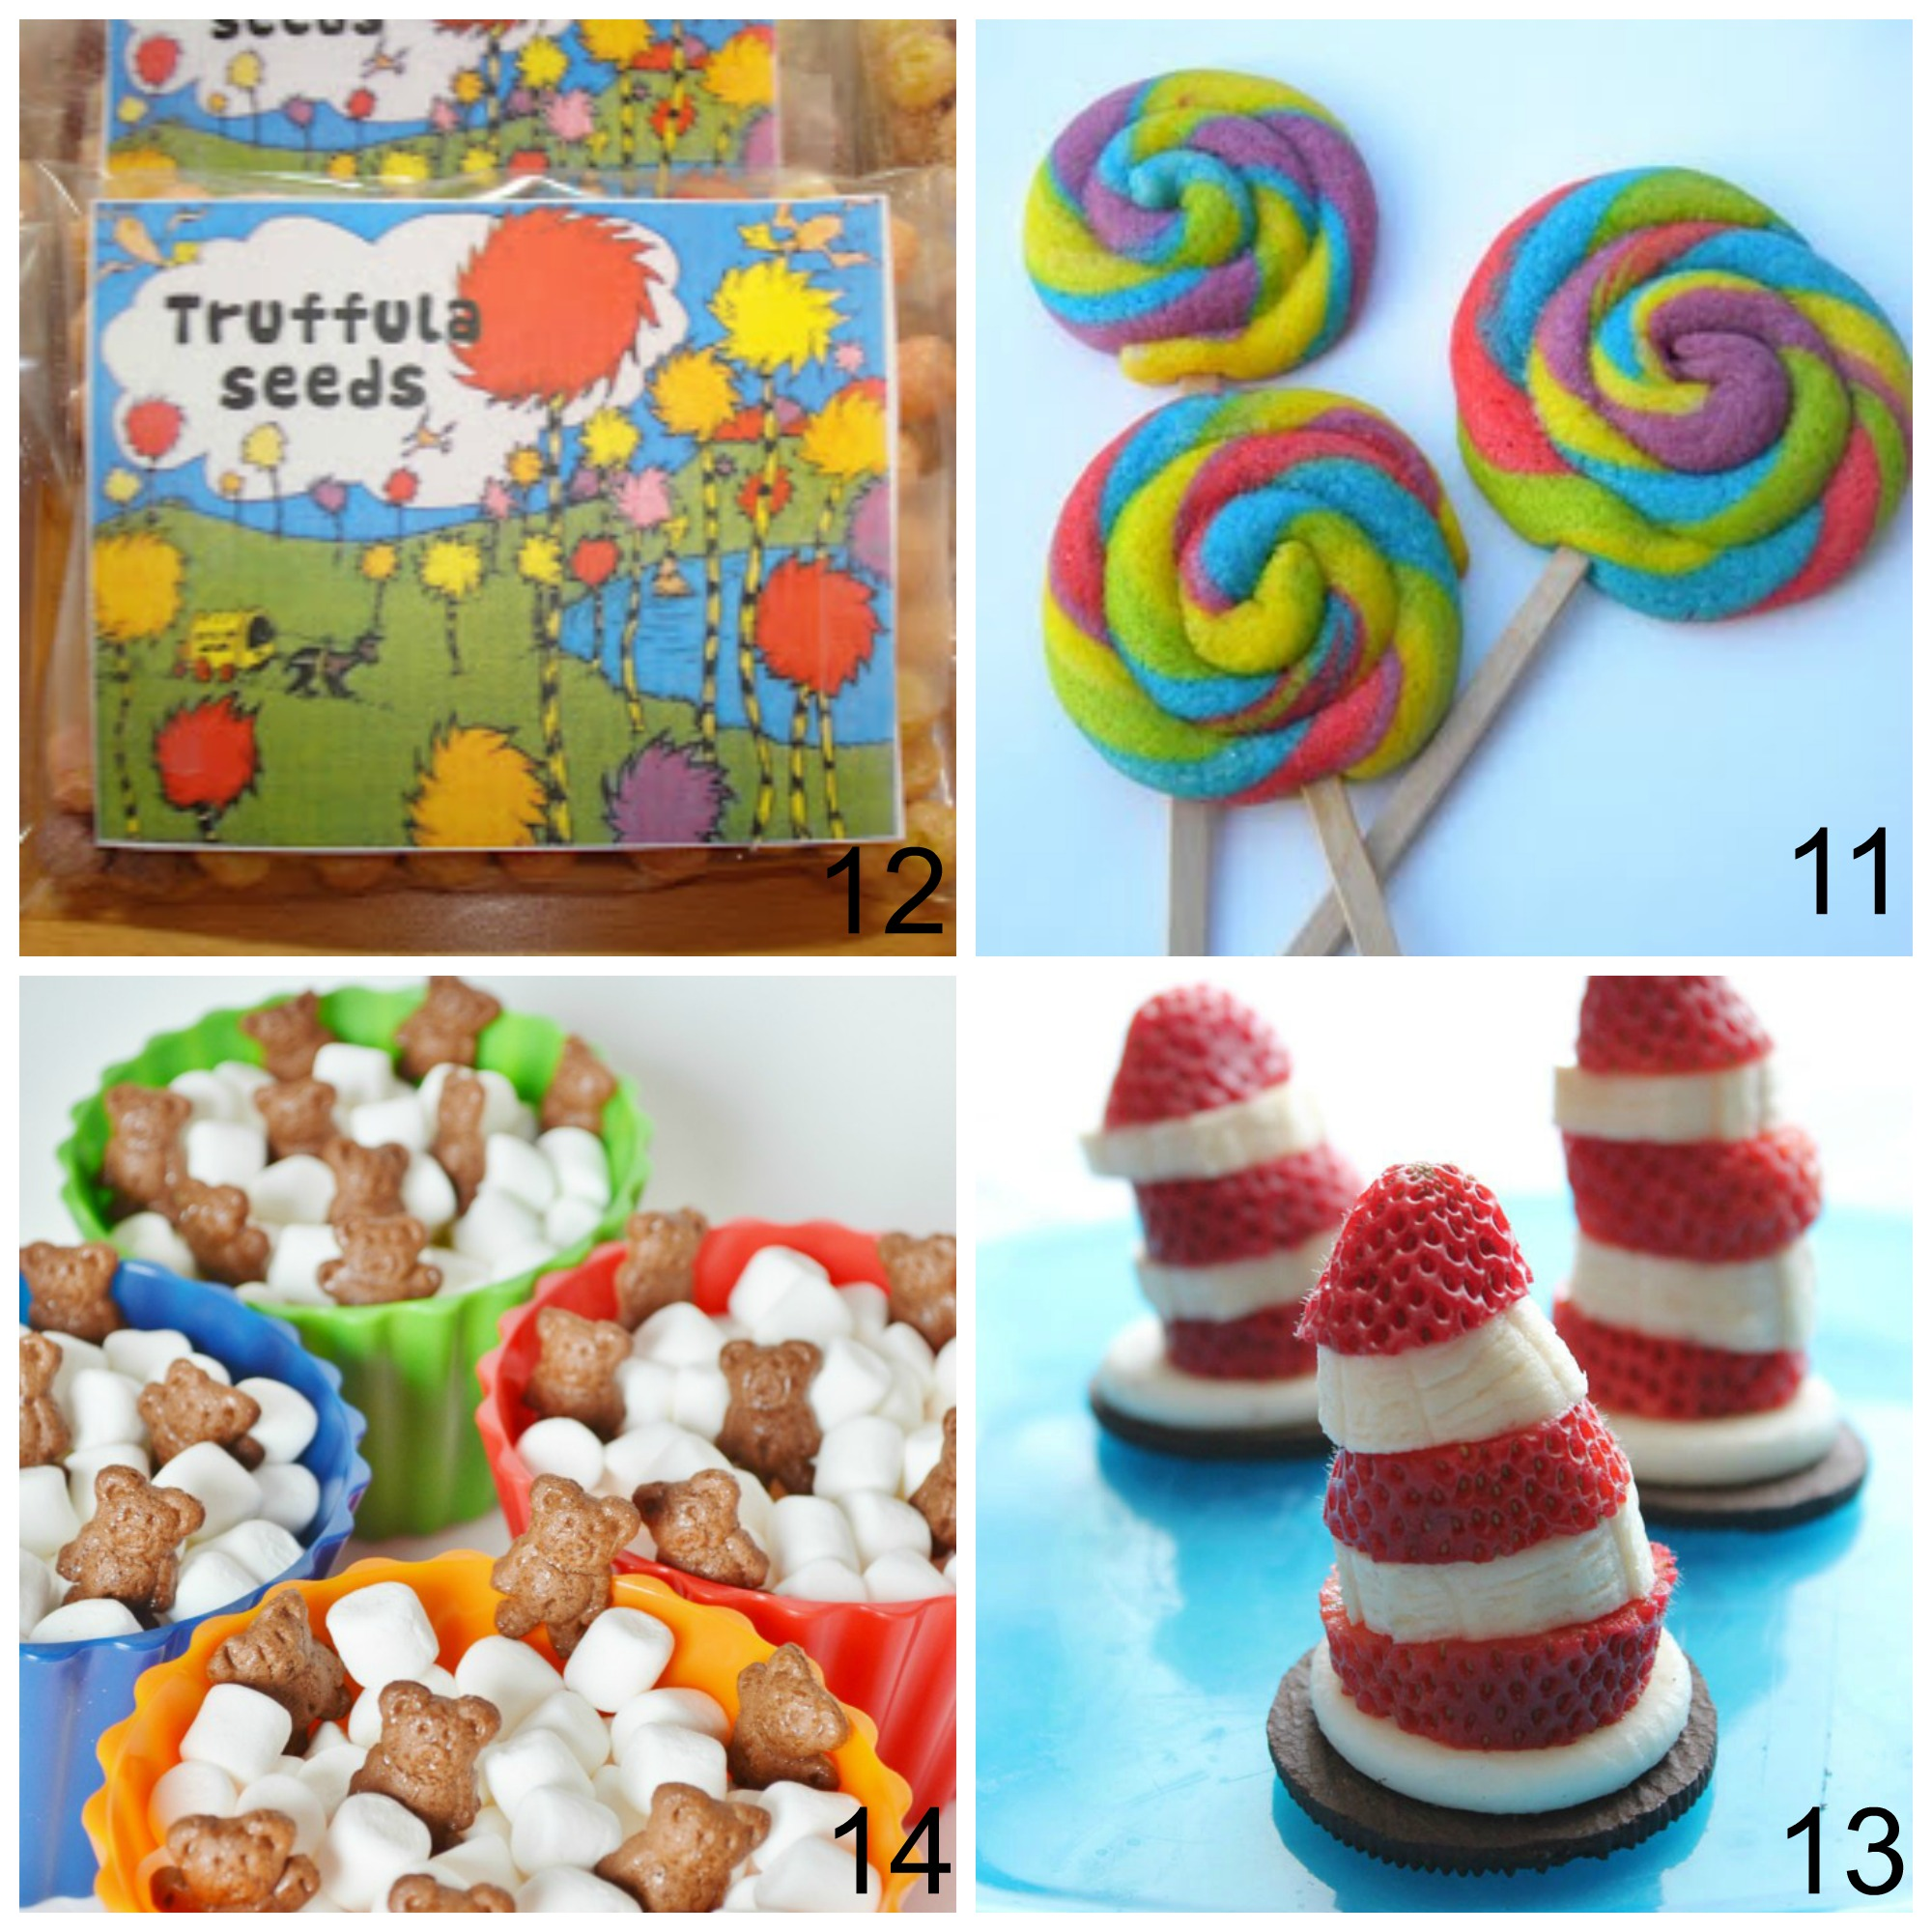 graphic relating to Truffula Seeds Printable titled 25 Enjoyable Dr. Seuss Snacks and Crafts Excellent for Birthday or